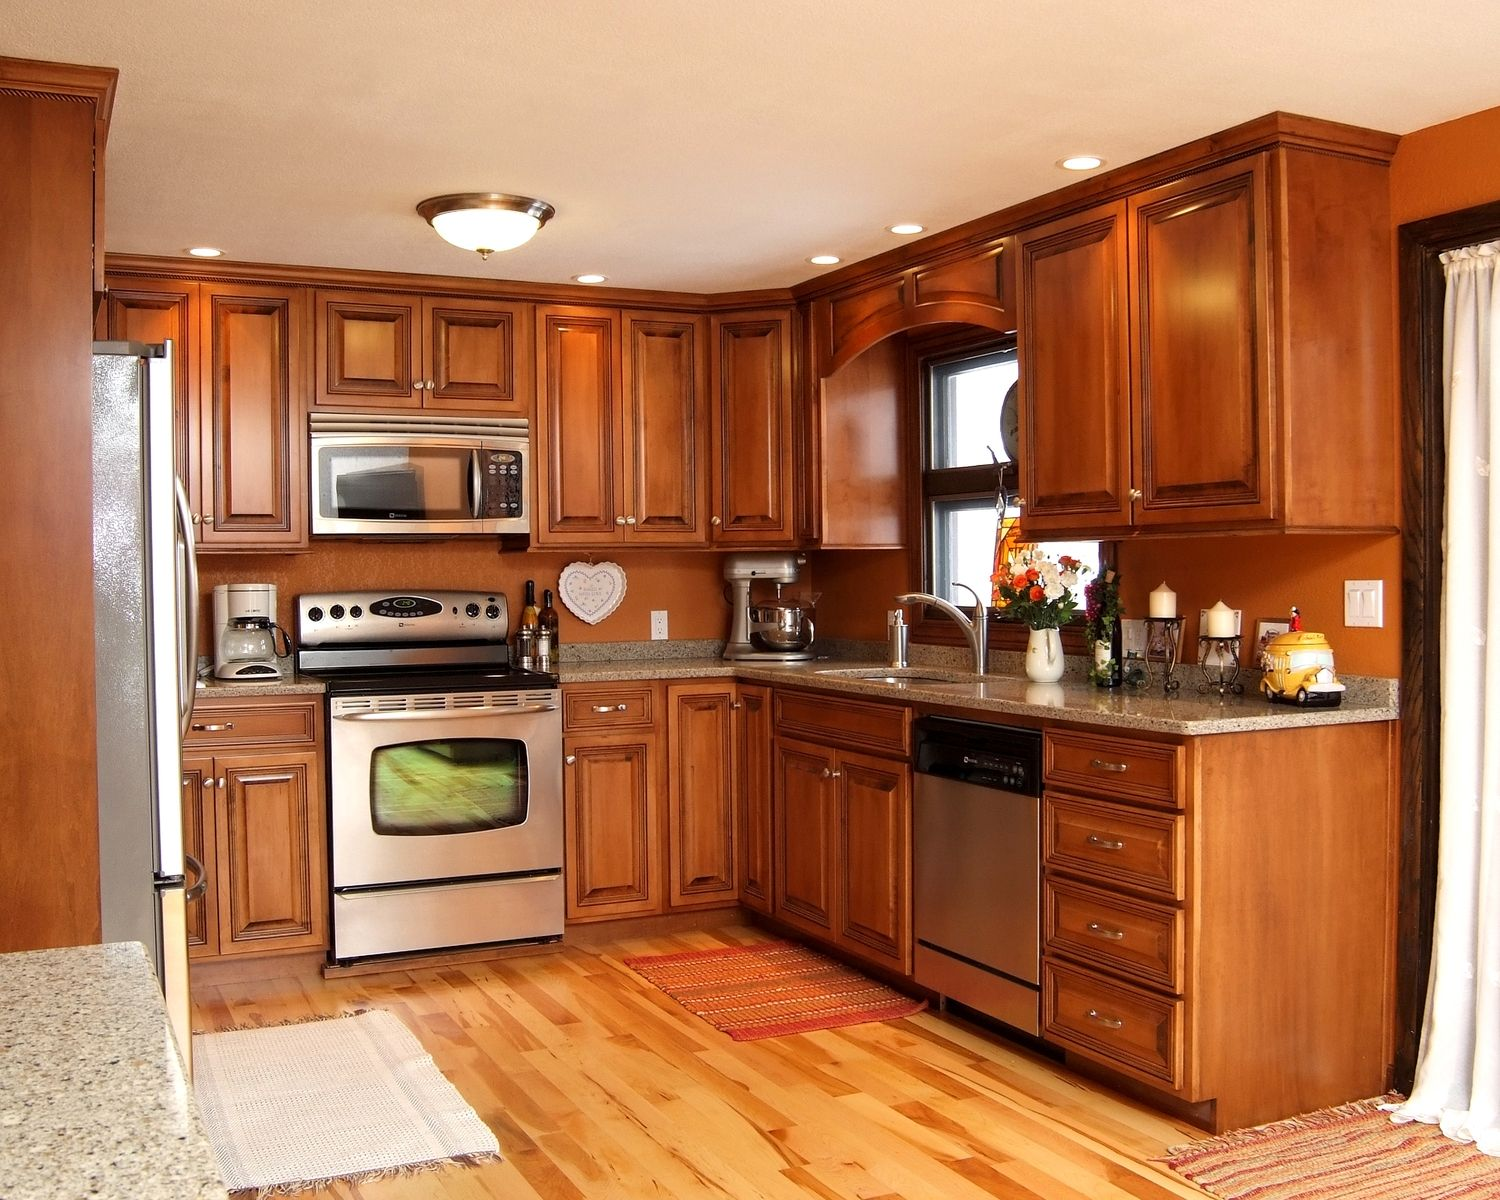 Maple glazed kitchen with Quartz countertops (With images